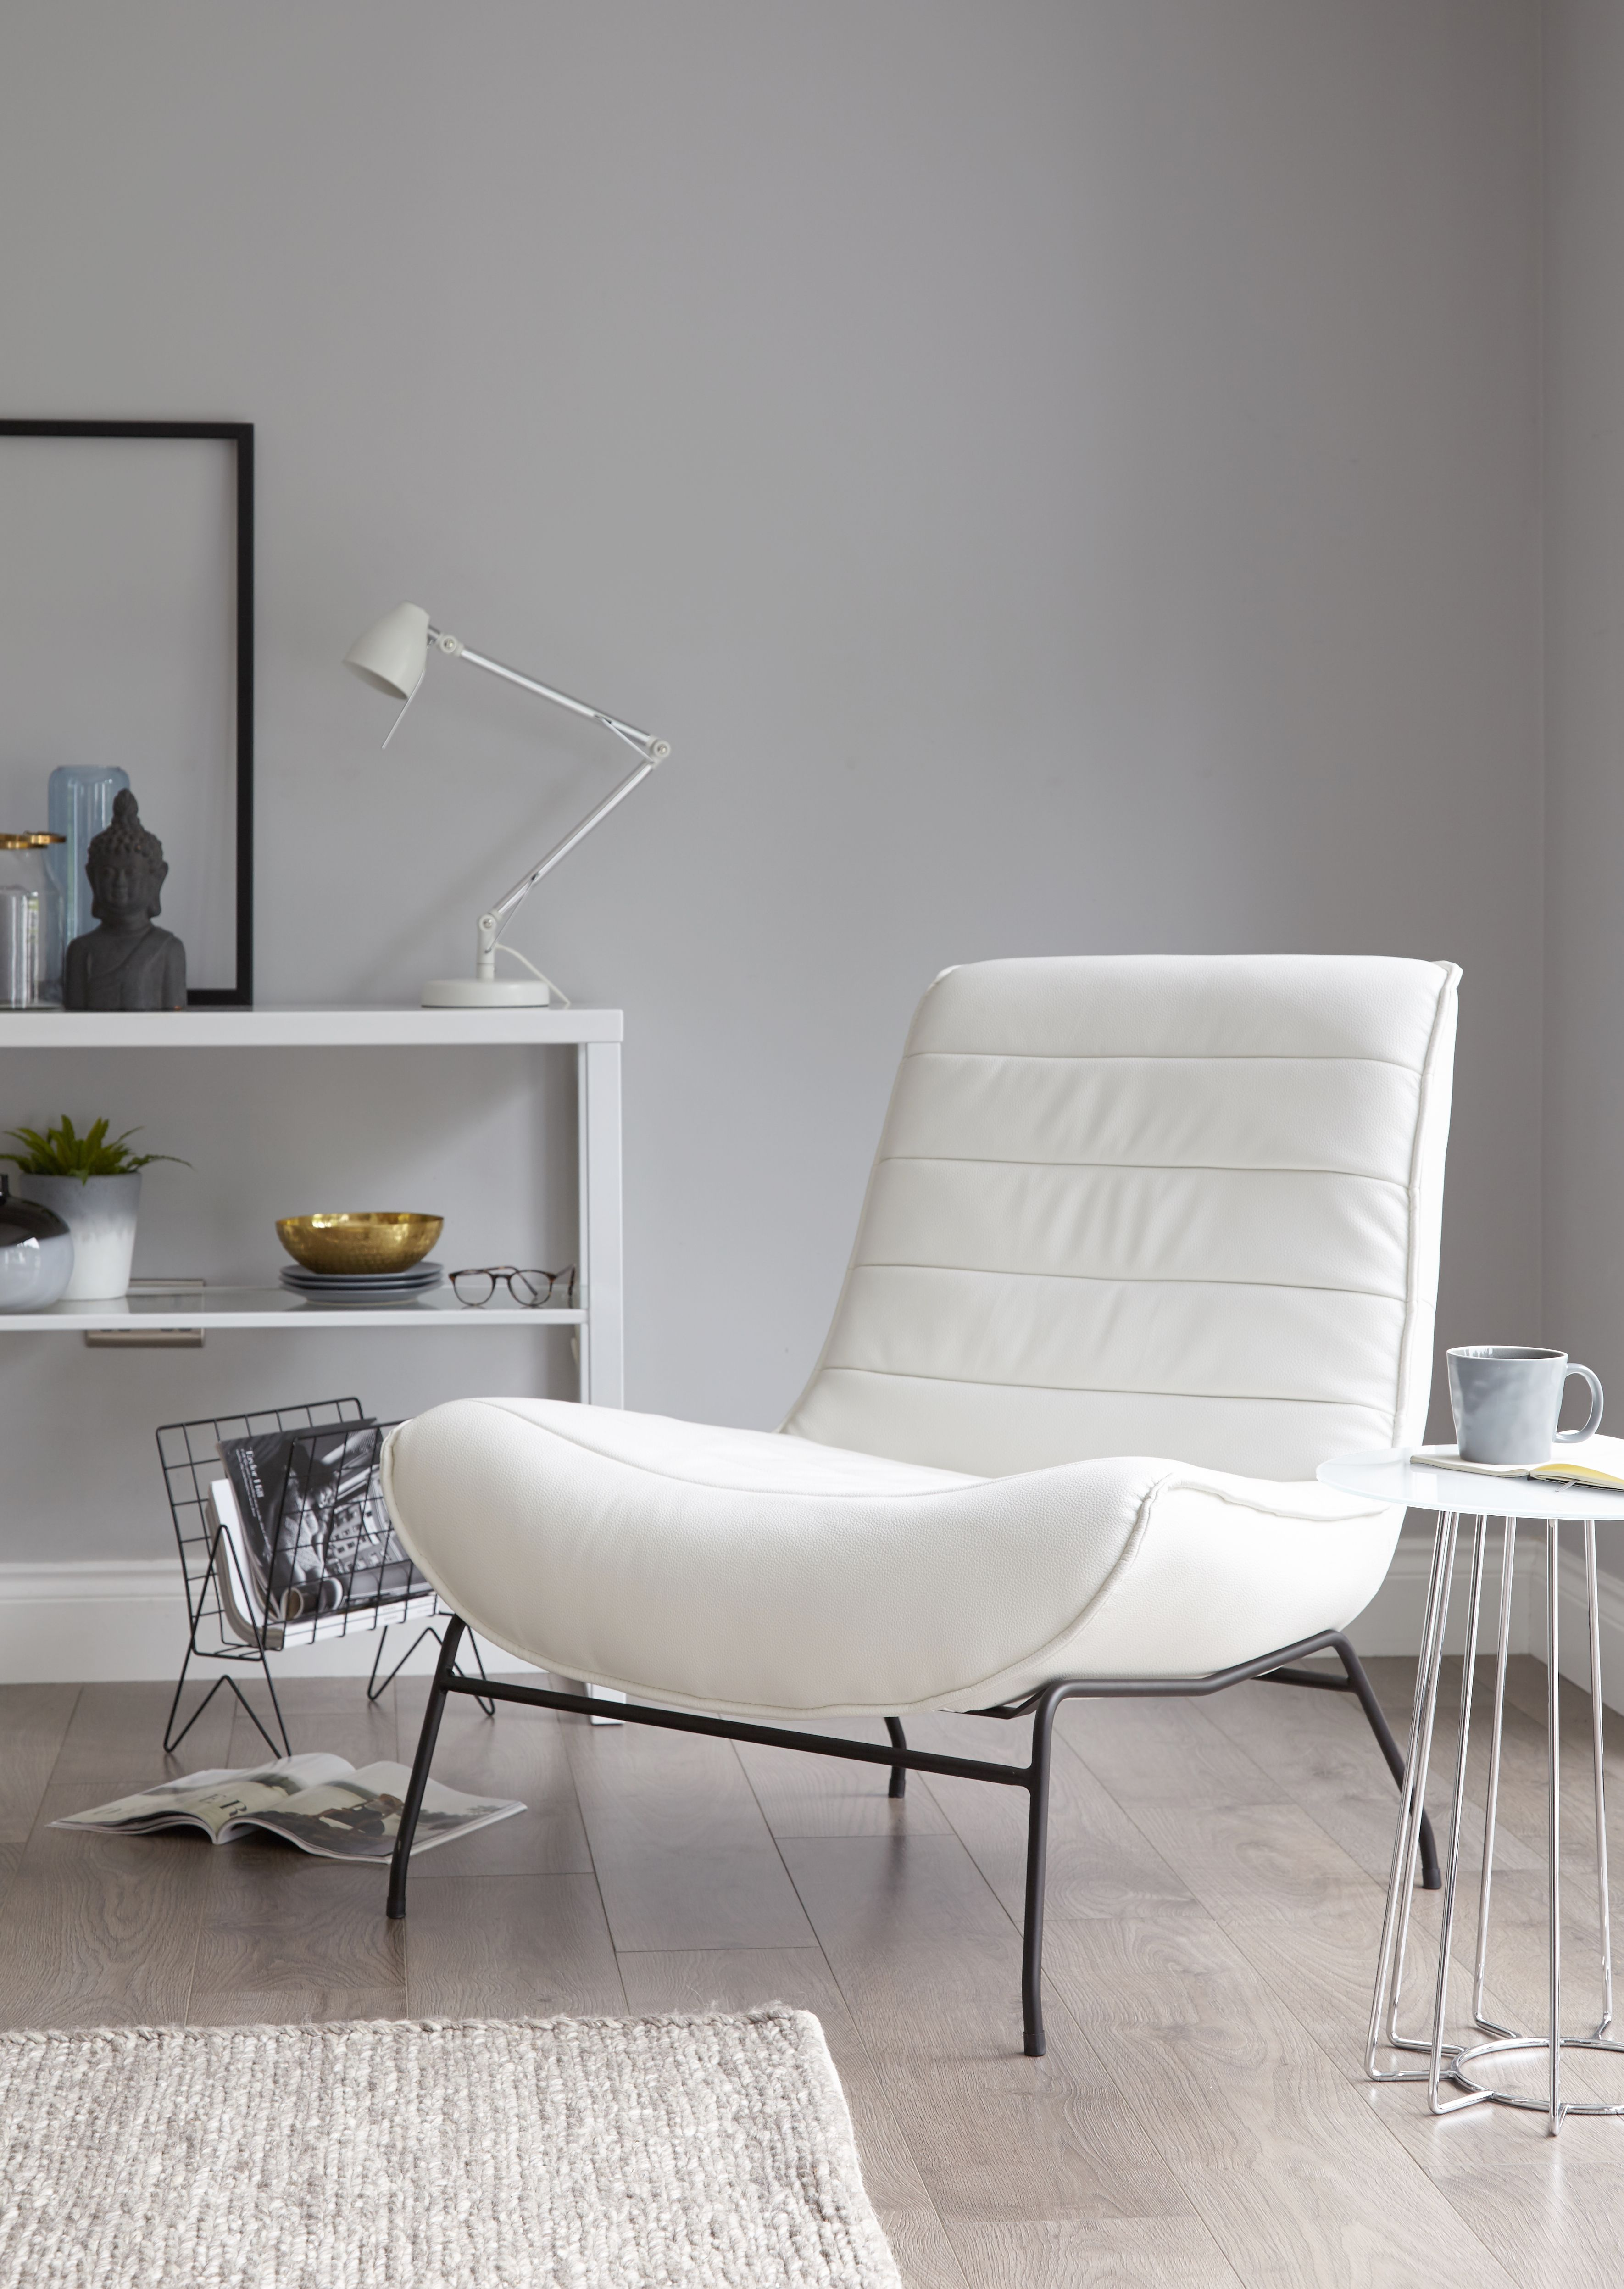 Contemporary White Leather Living Room Chairs Big Mirror Ideas For Drift Occasional Armchair Cosy Corners Pinterest Chair Modern Bedroom Dining